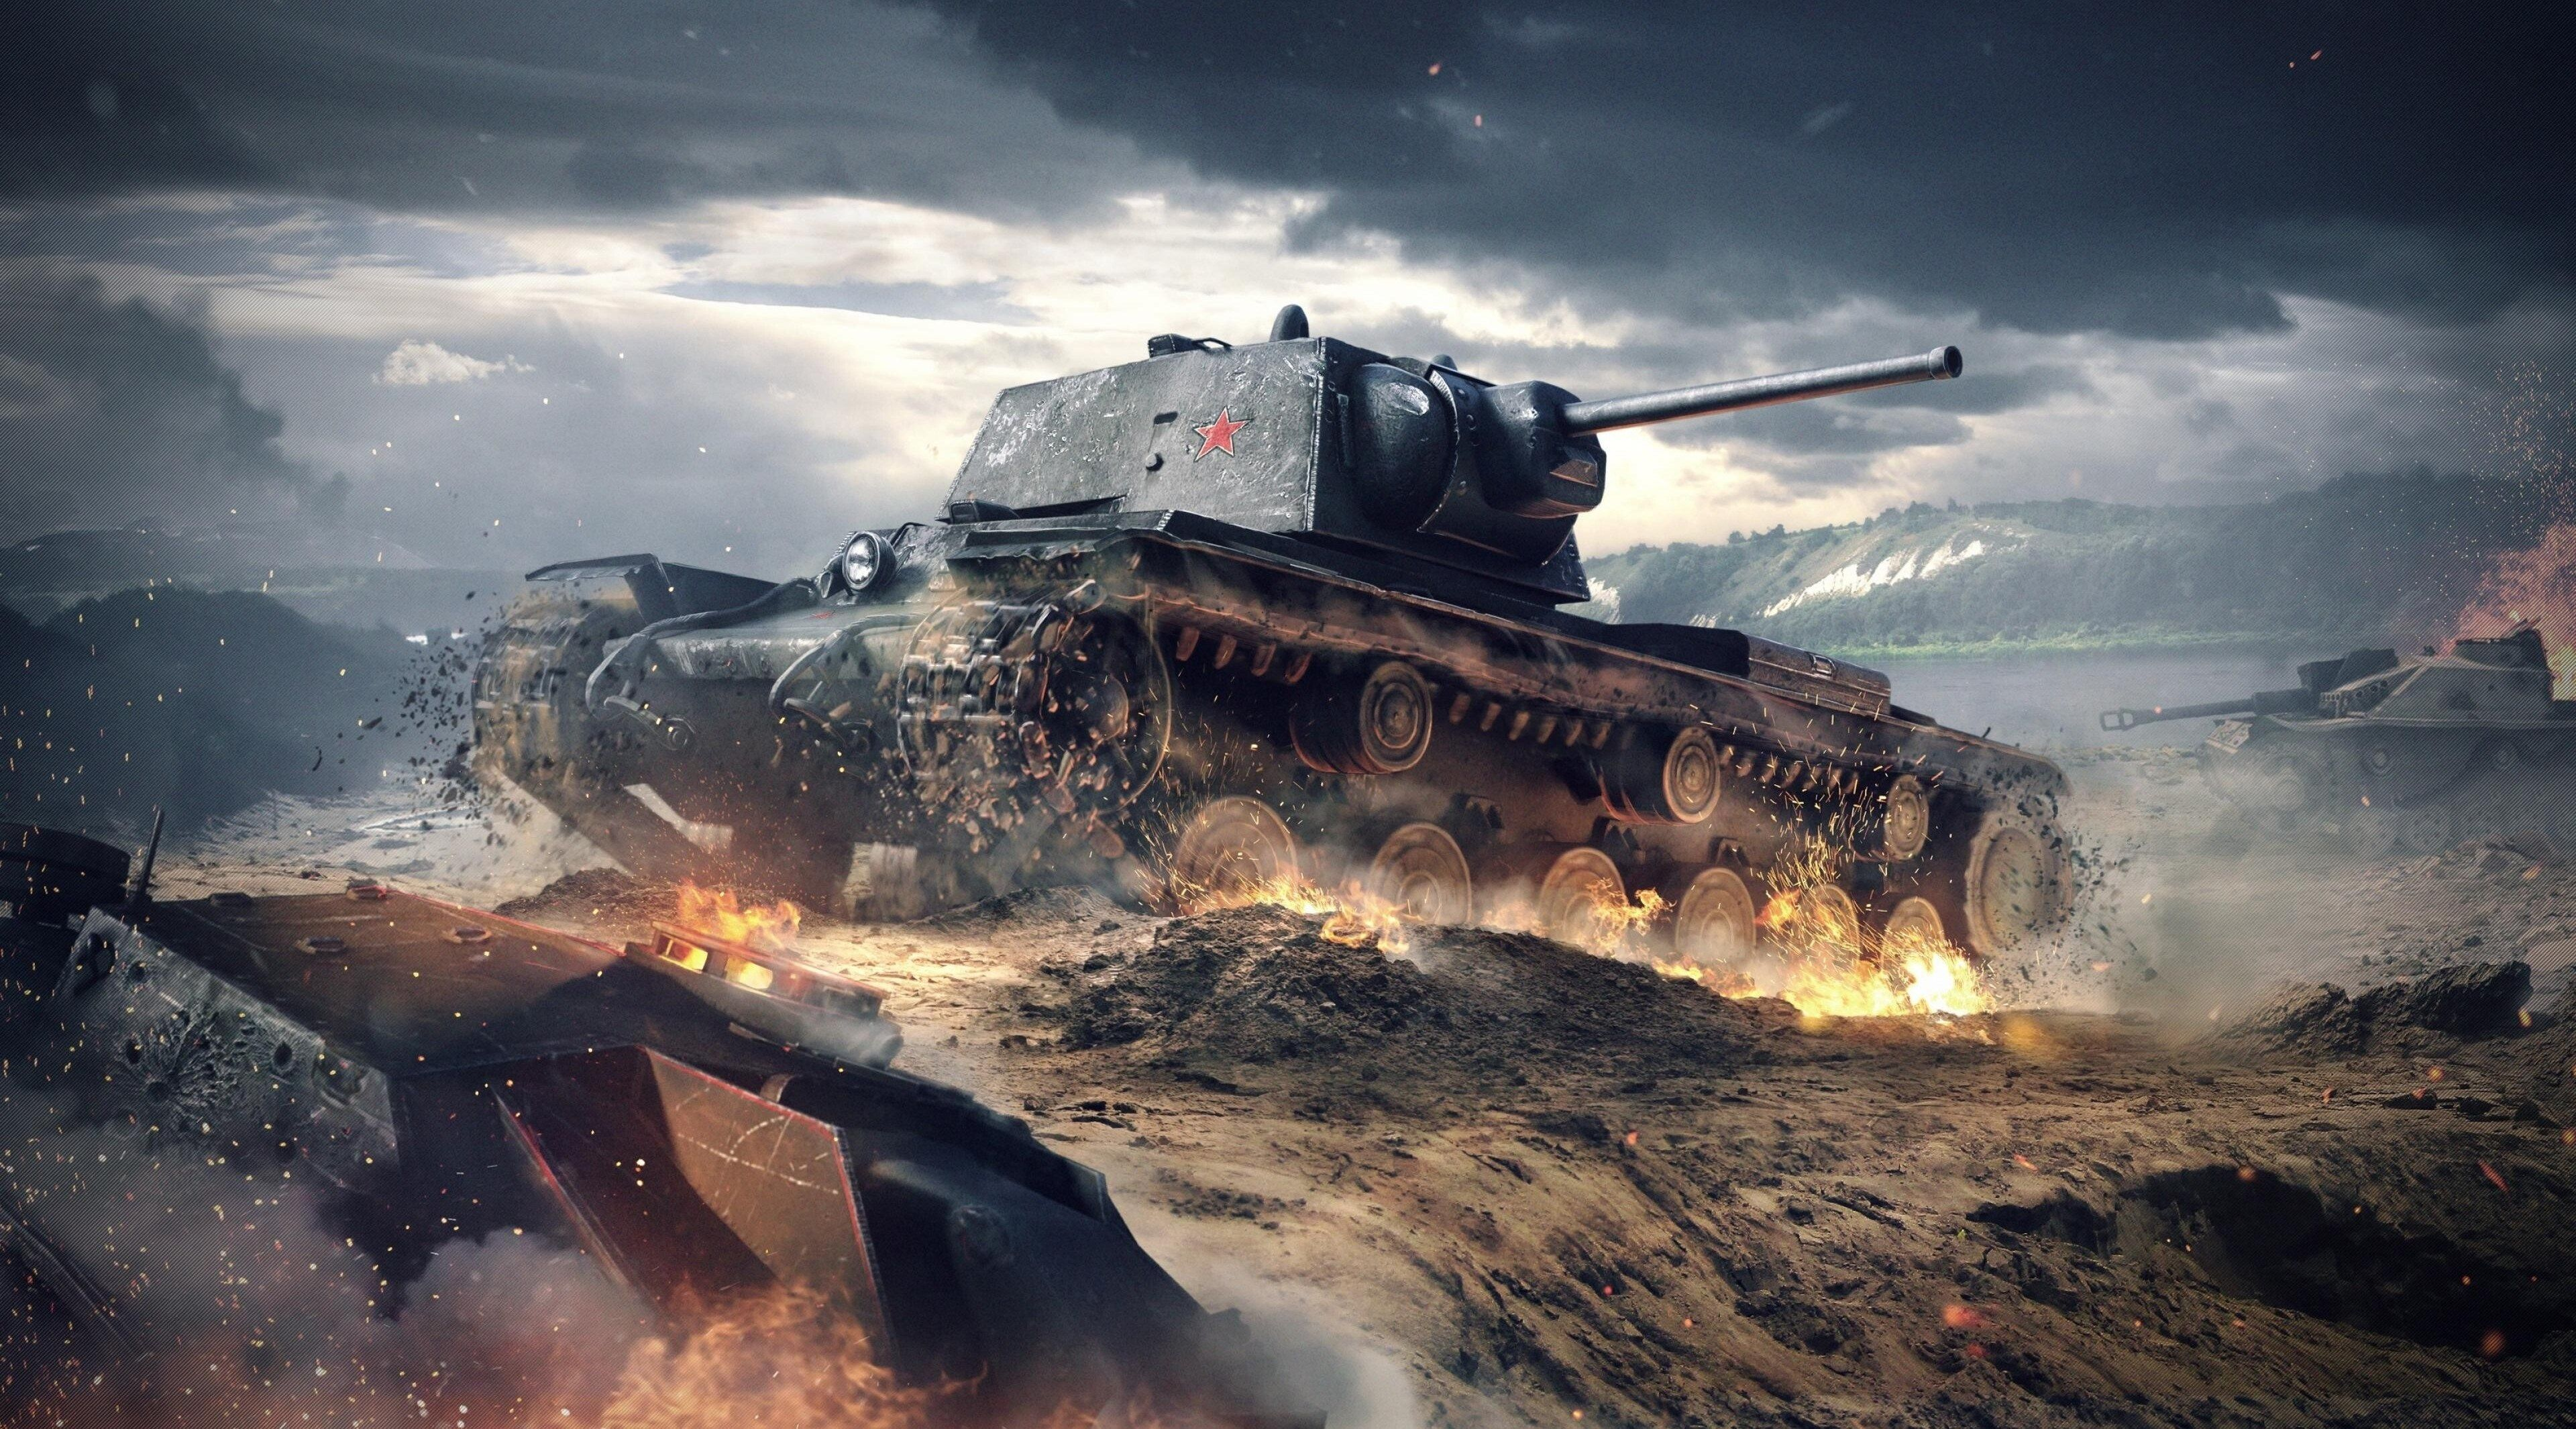 3840x2130 world of tanks blitz 4k free download hd wallpaper